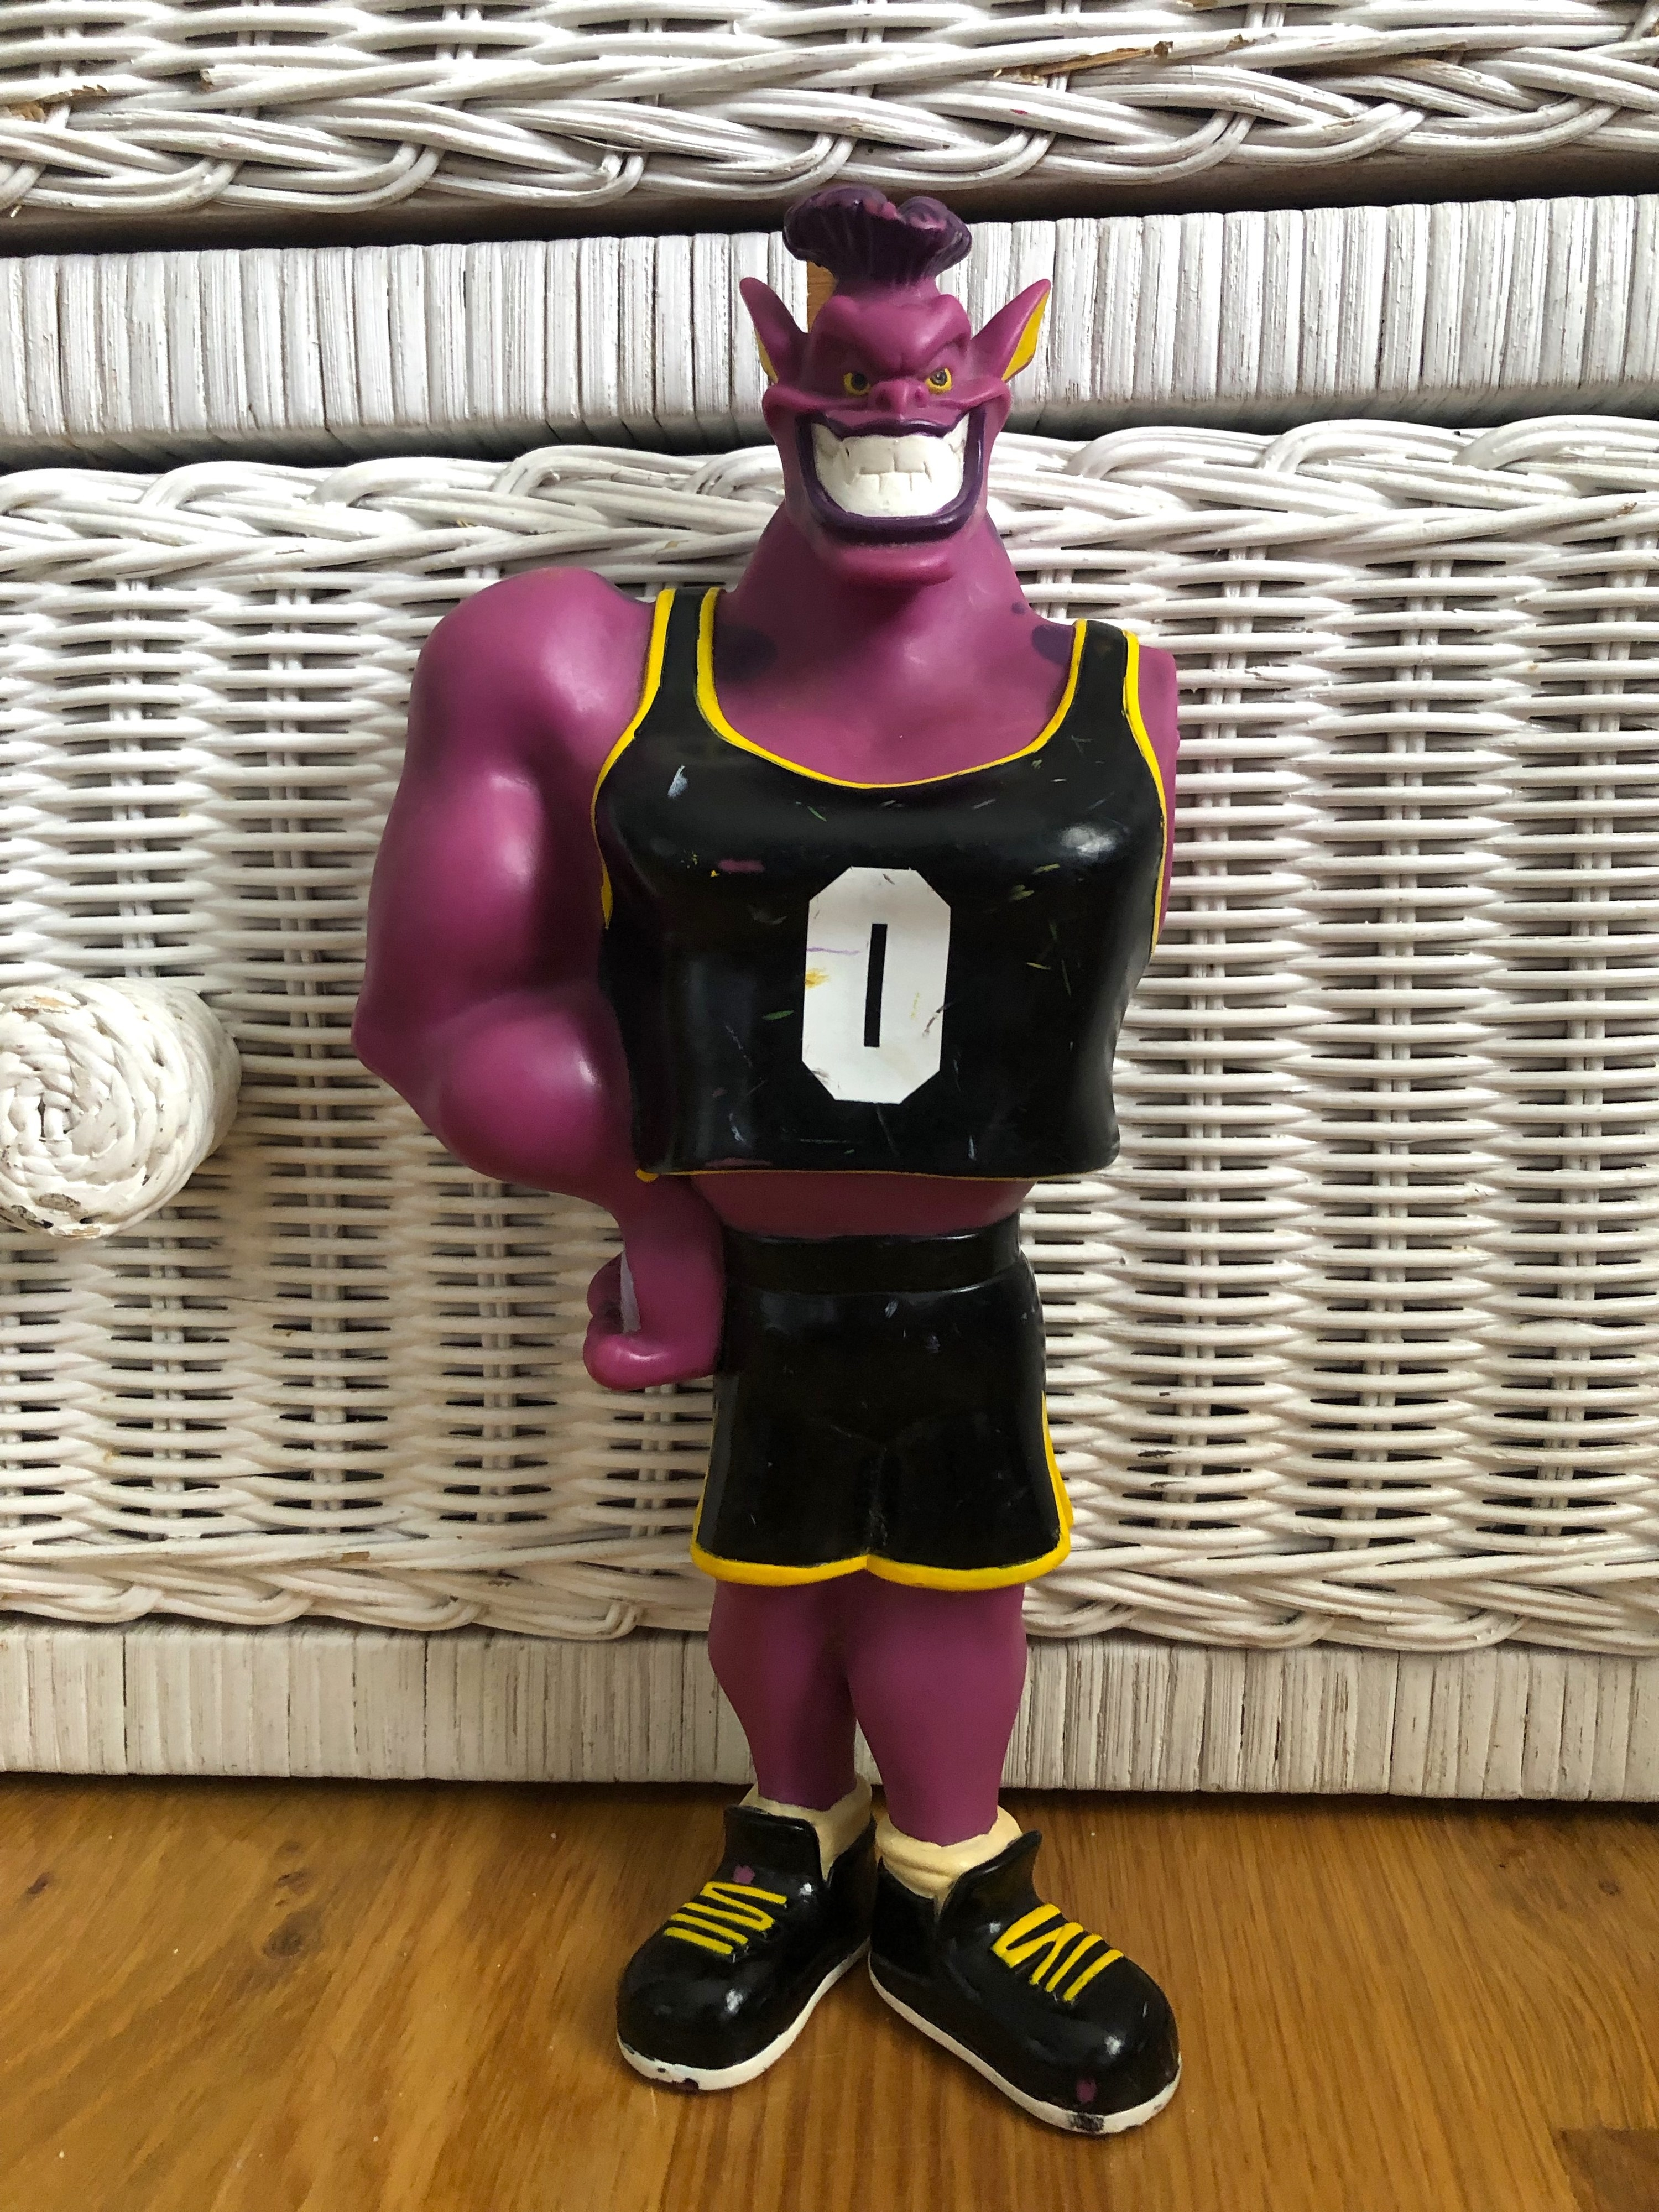 Monstar action figure missing an arm